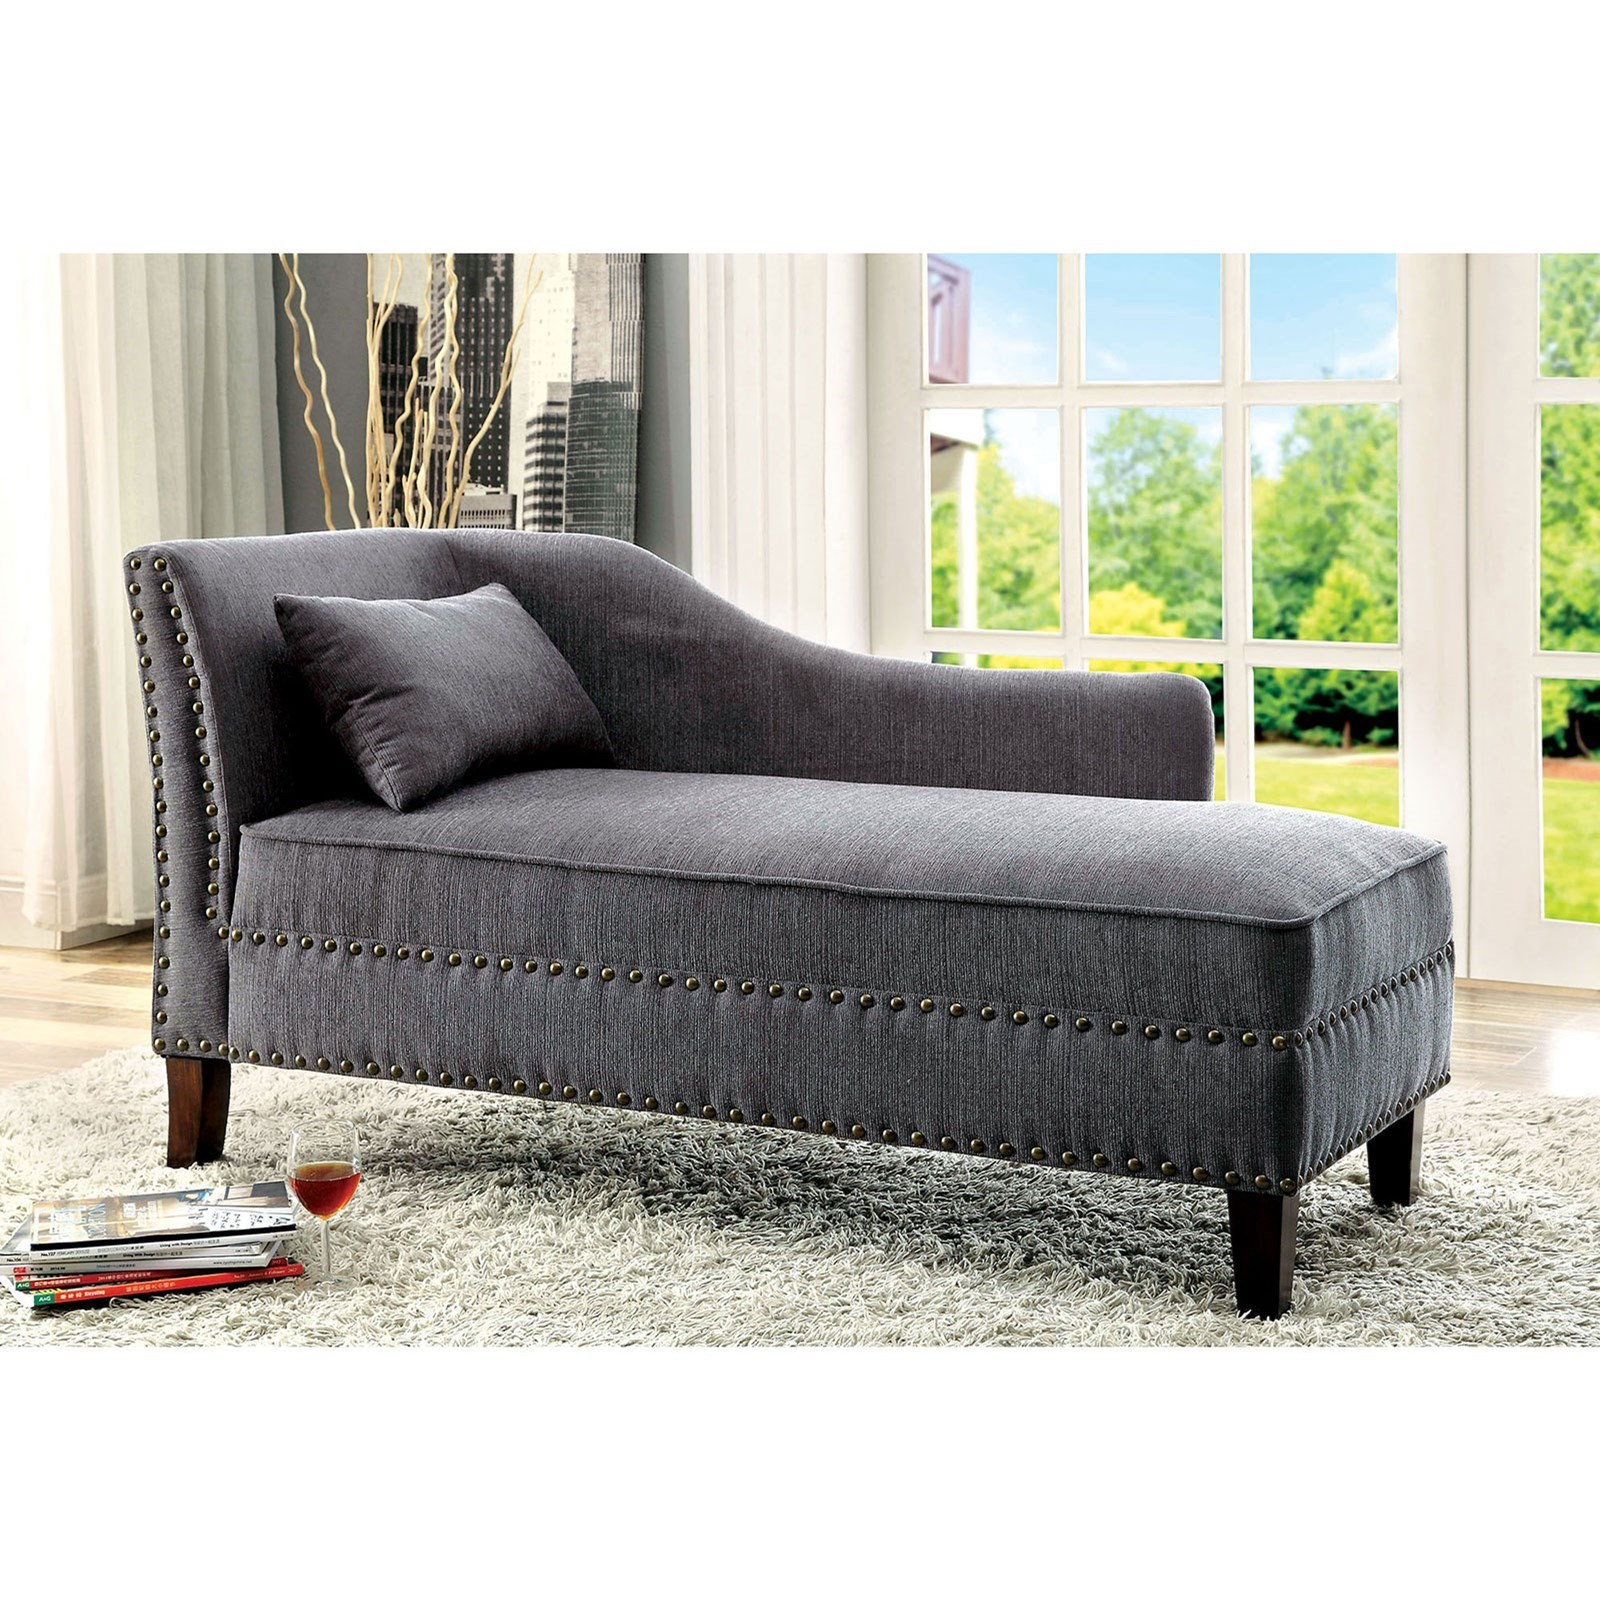 Stillwater Chaise by Furniture of America at Dream Home Interiors